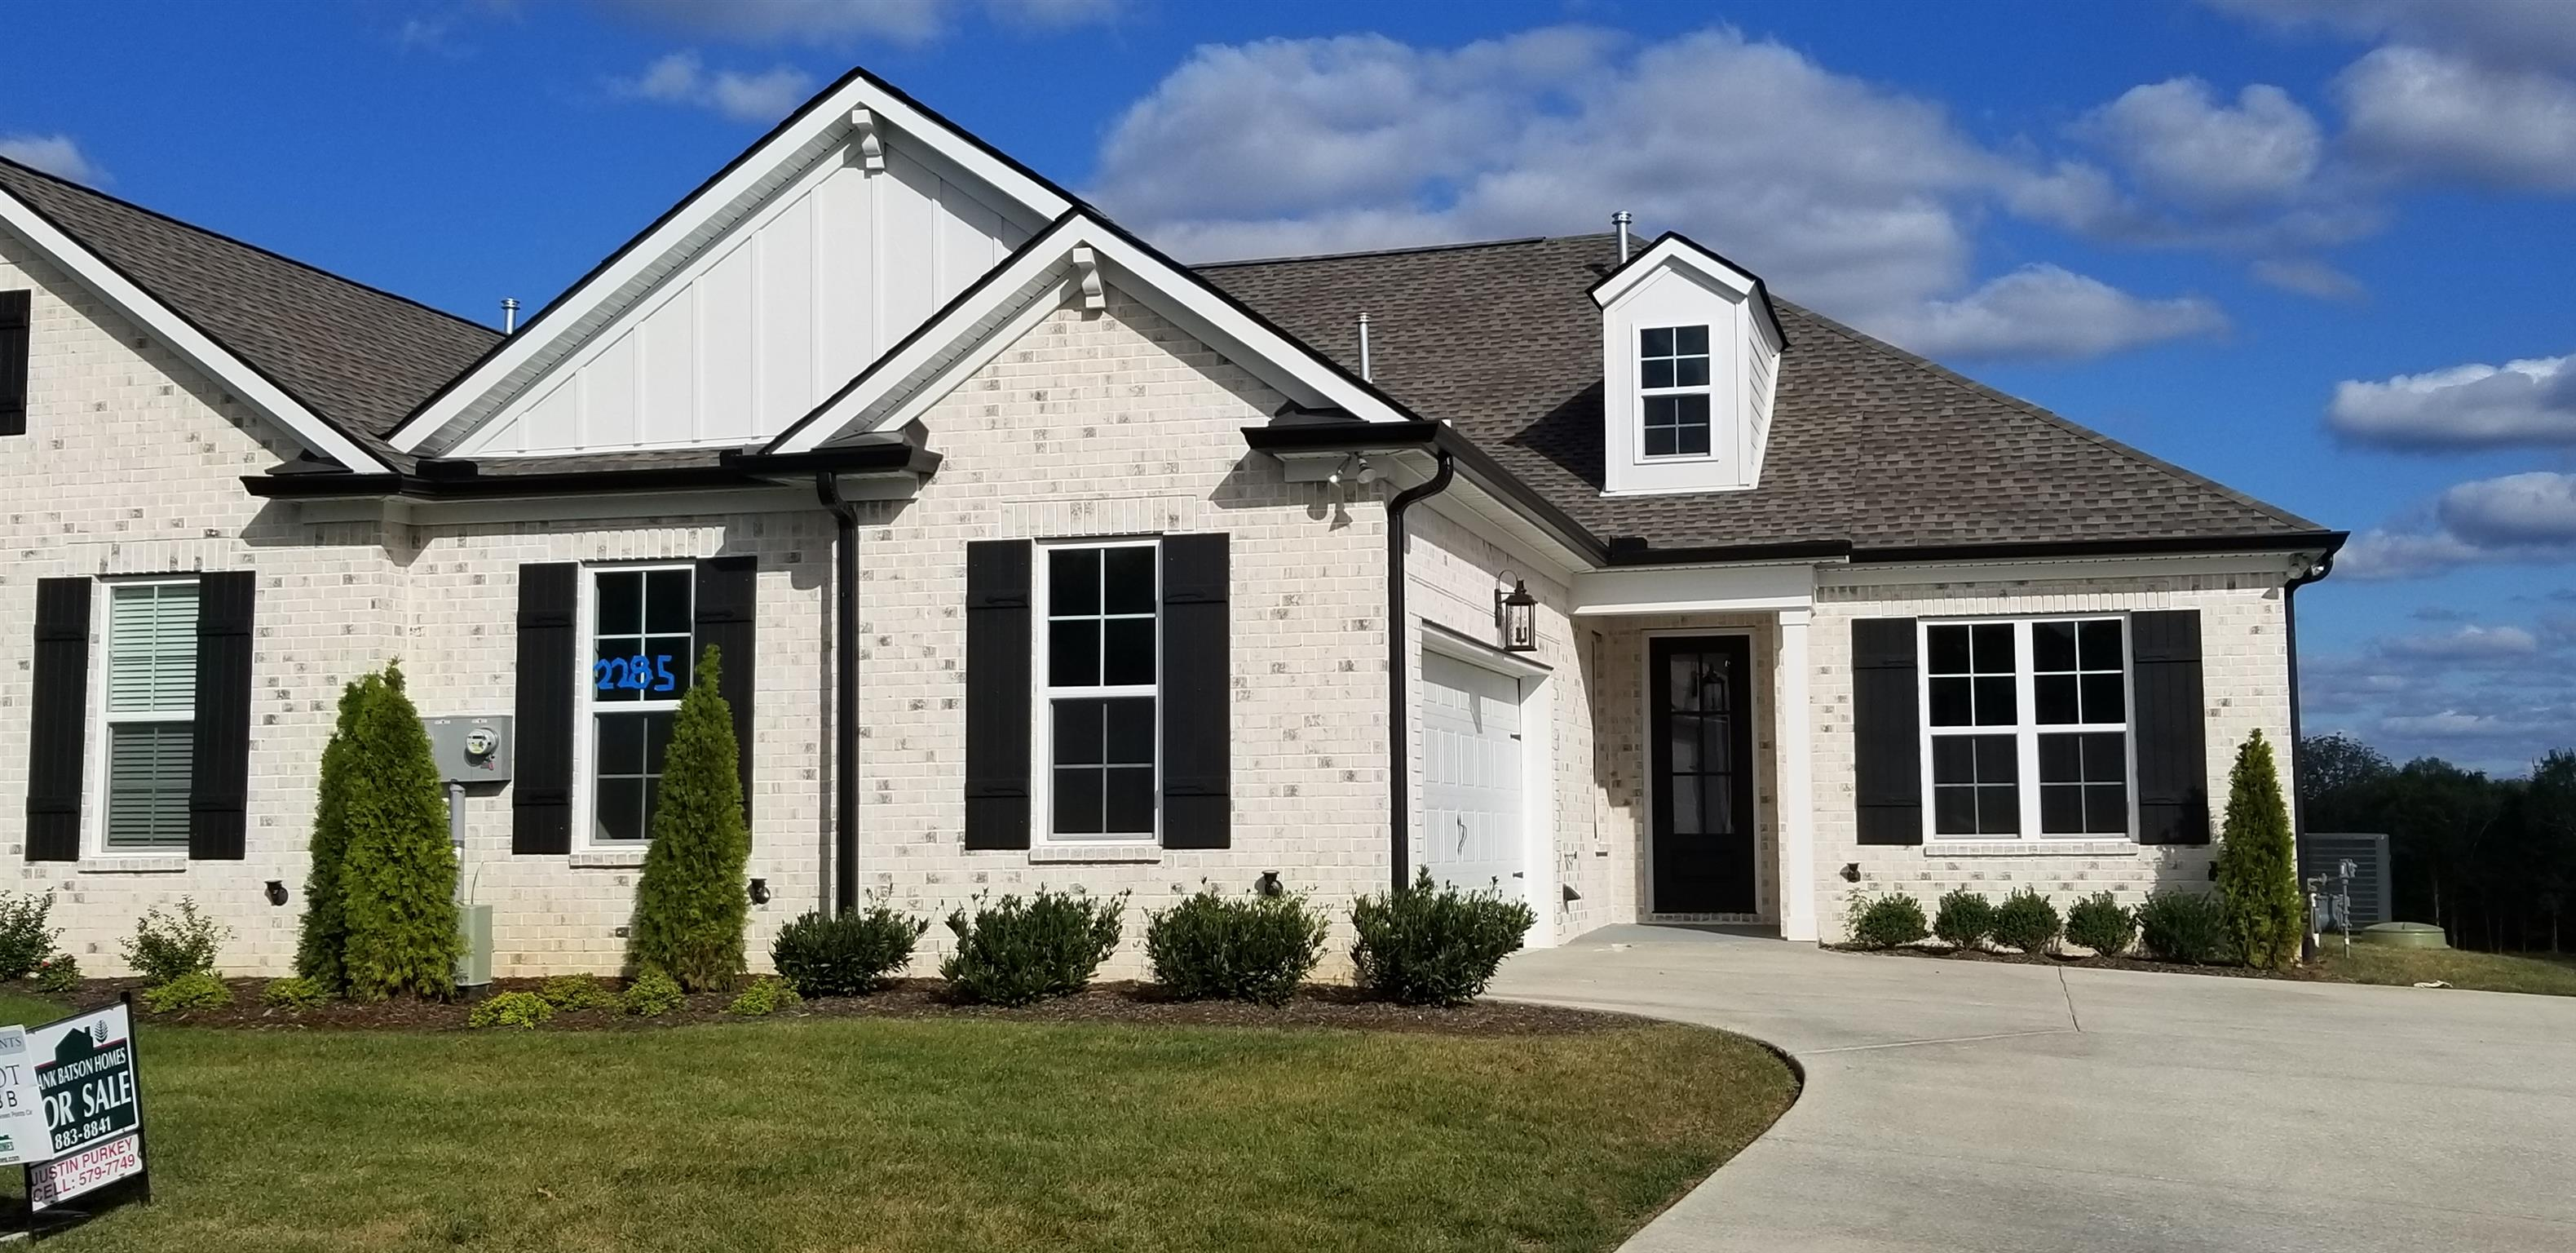 2285 Seven Points Cir, Hermitage in Davidson County County, TN 37076 Home for Sale